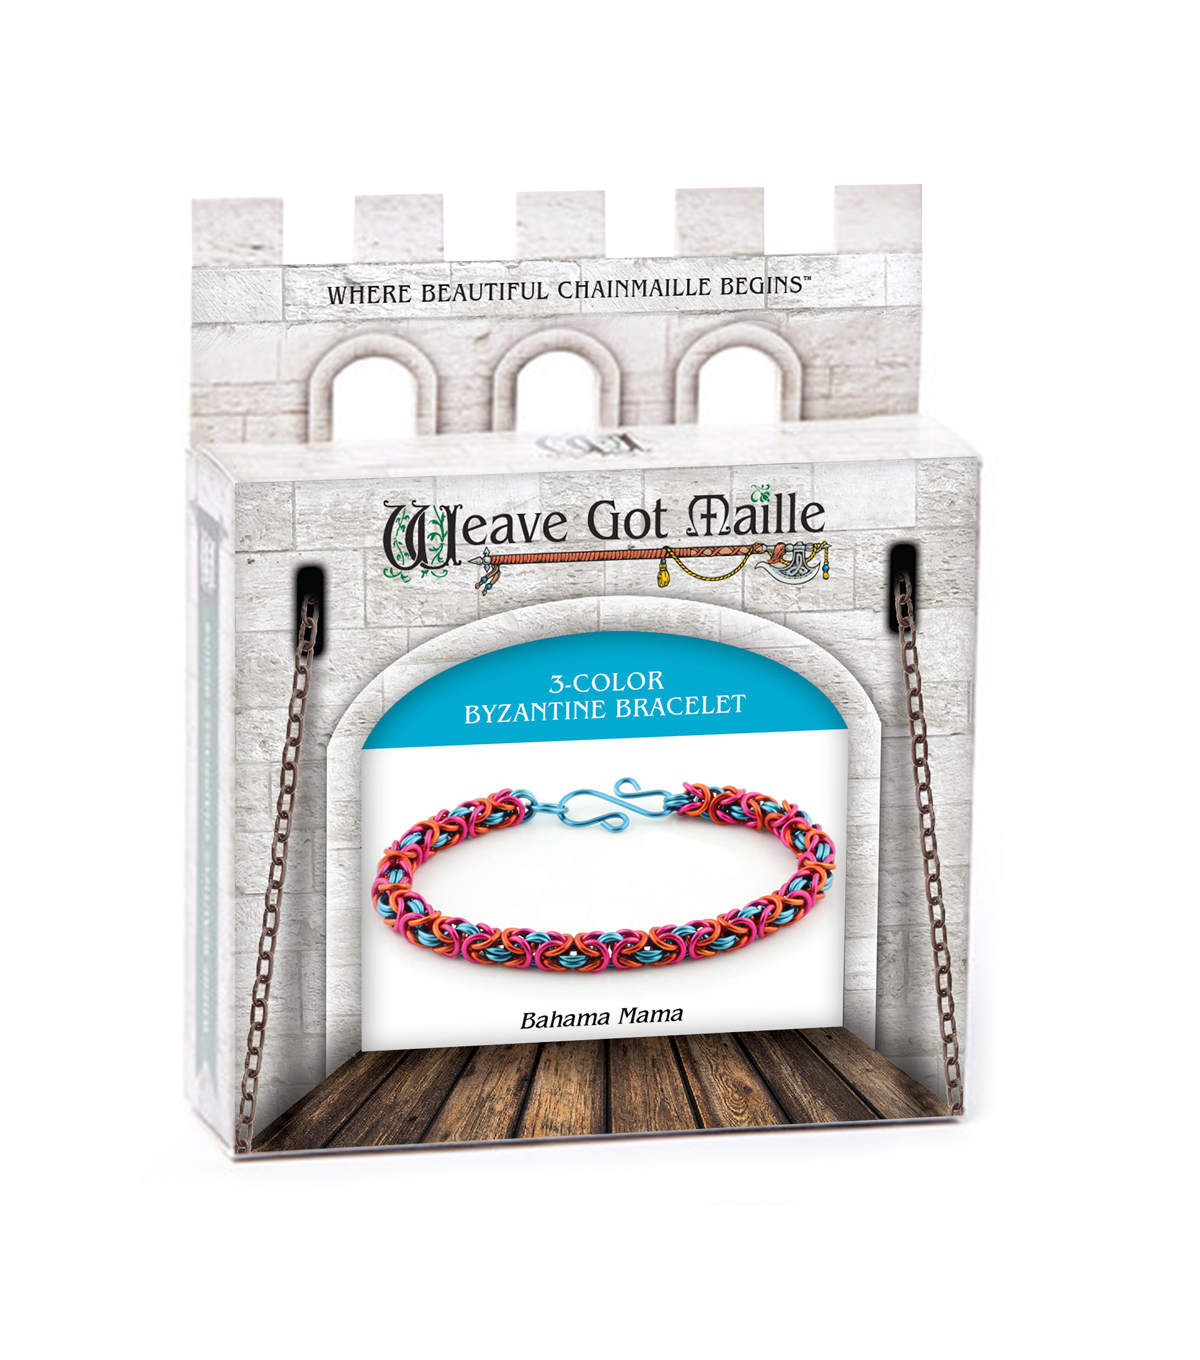 Weave Got Maille 3 Color Byzantine Bracelet Kit-Bahama Mama